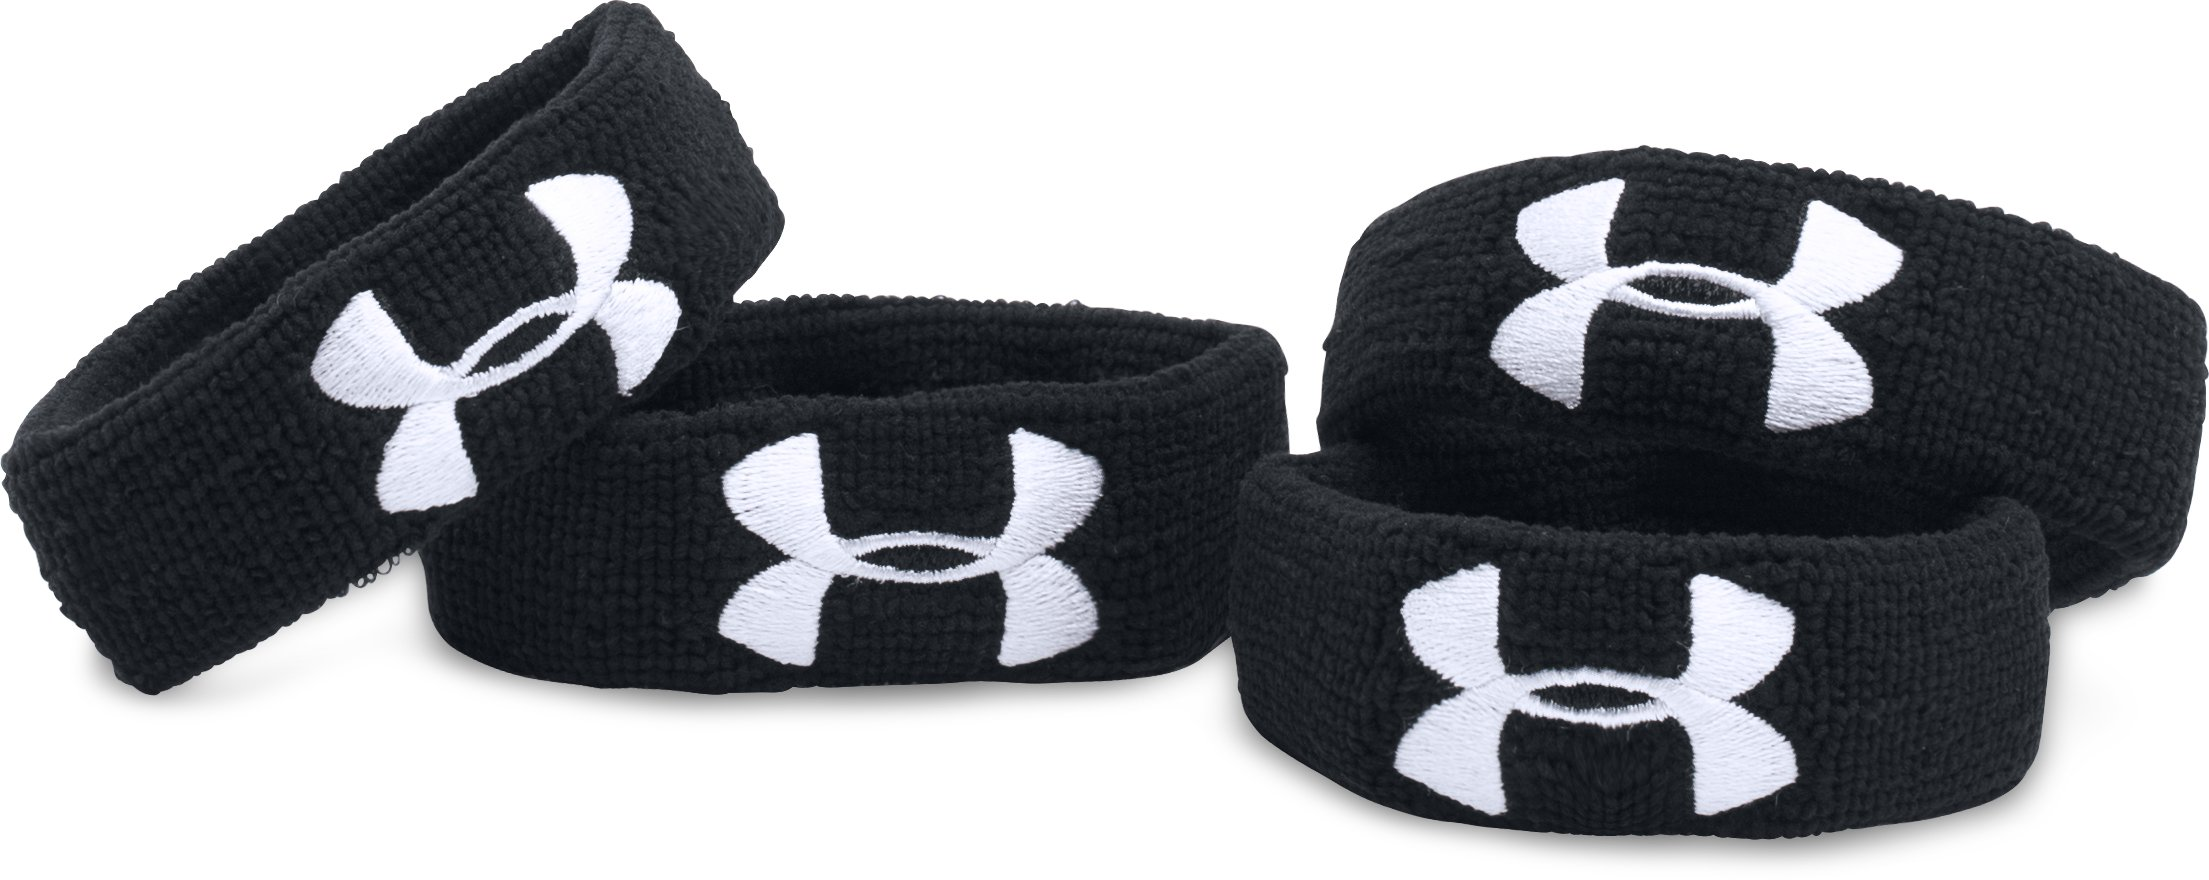 "UA 1"" Performance Wristband 4-Pack 4 Colors $12.99"